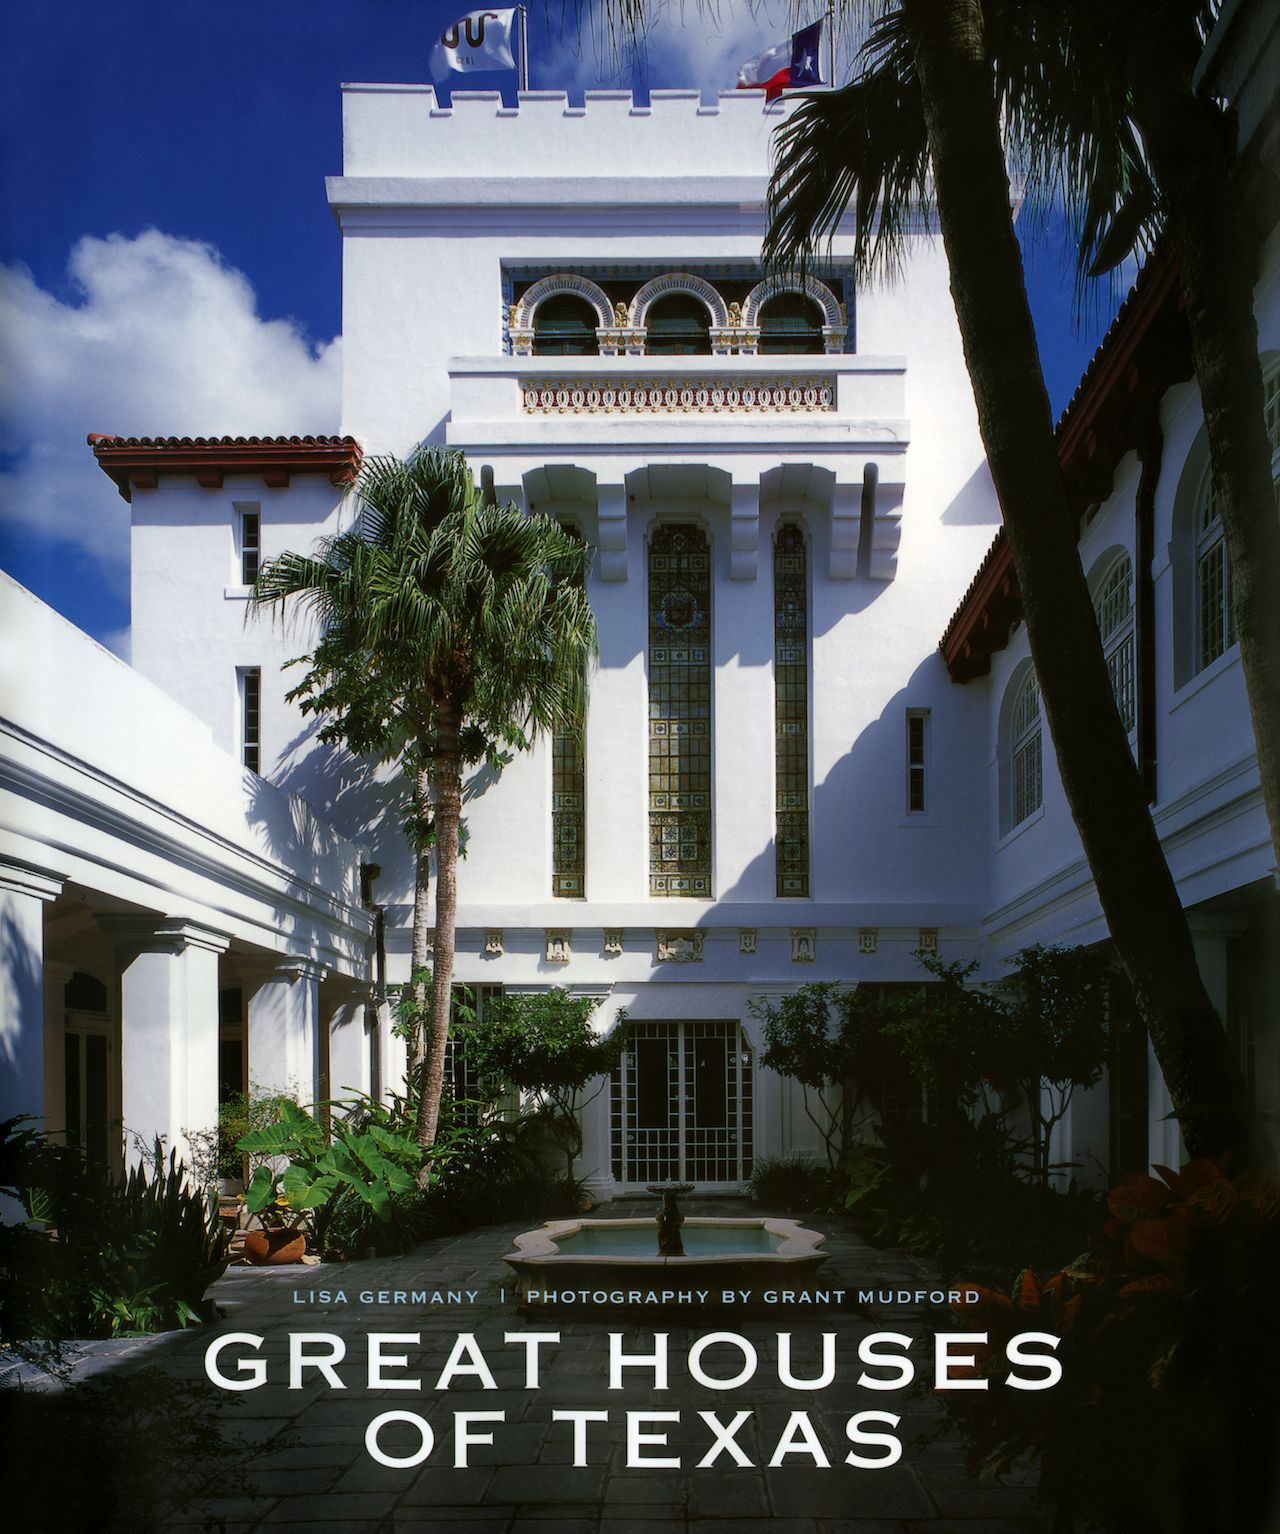 Great Houses cover.jpg